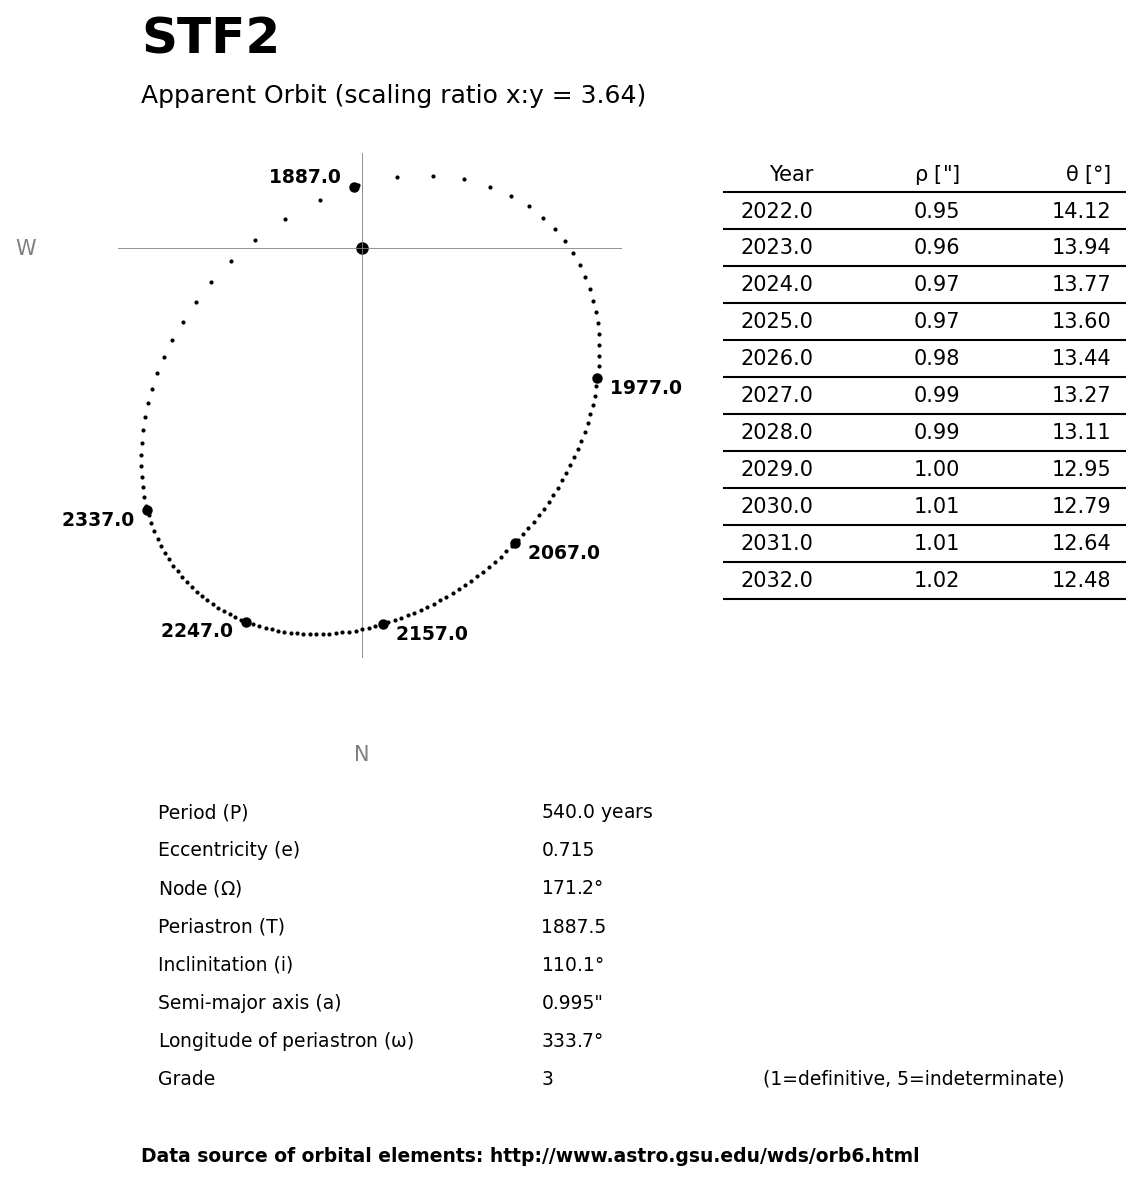 ../images/binary-star-orbits/STF2-orbit.jpg